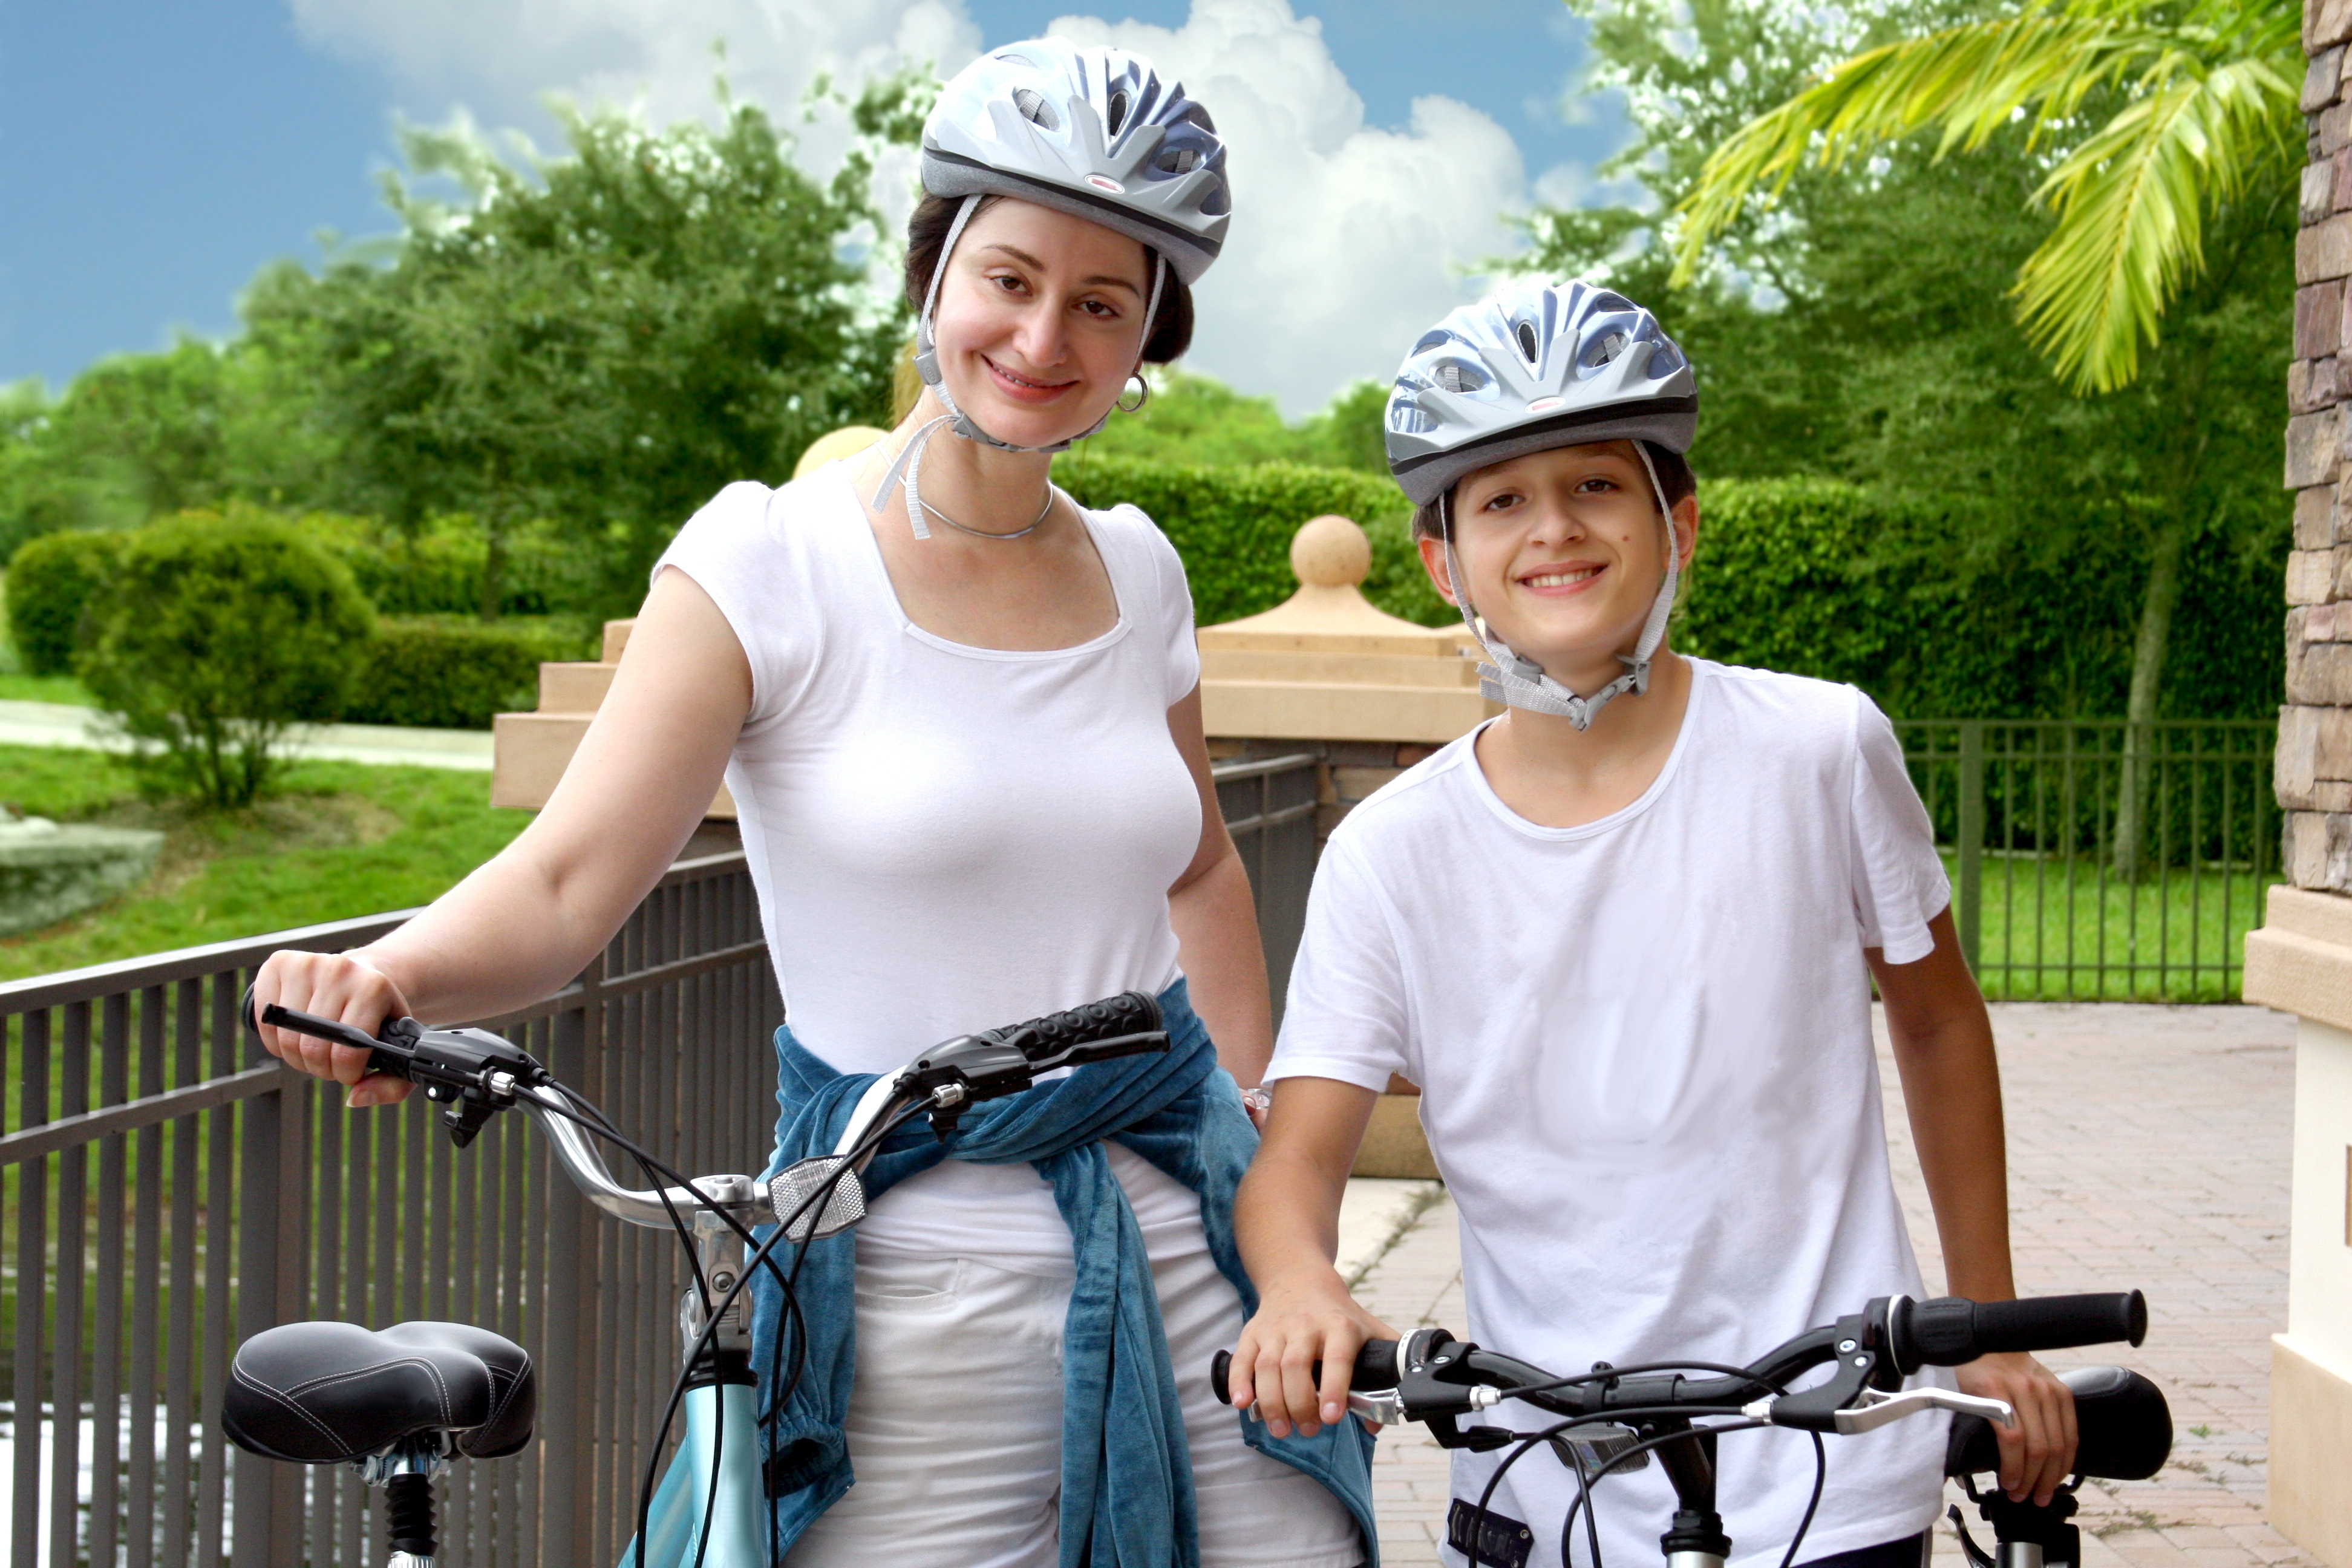 Bicycle helmets | Product Safety Australia